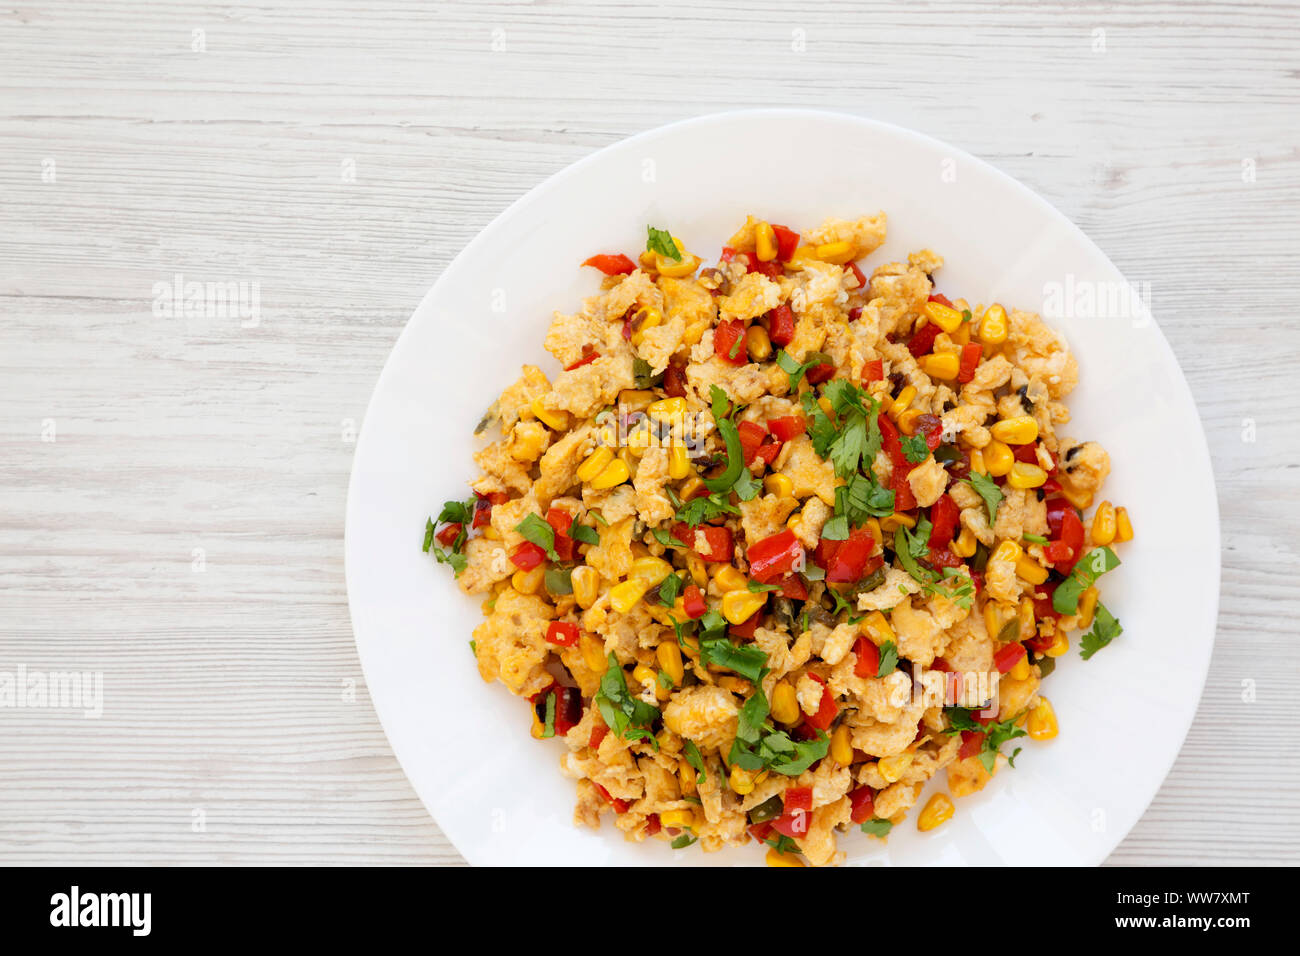 Homemade southwestern egg scramble on a white plate on a white wooden table. Flat lay, overhead, from above. Space for text. Stock Photo